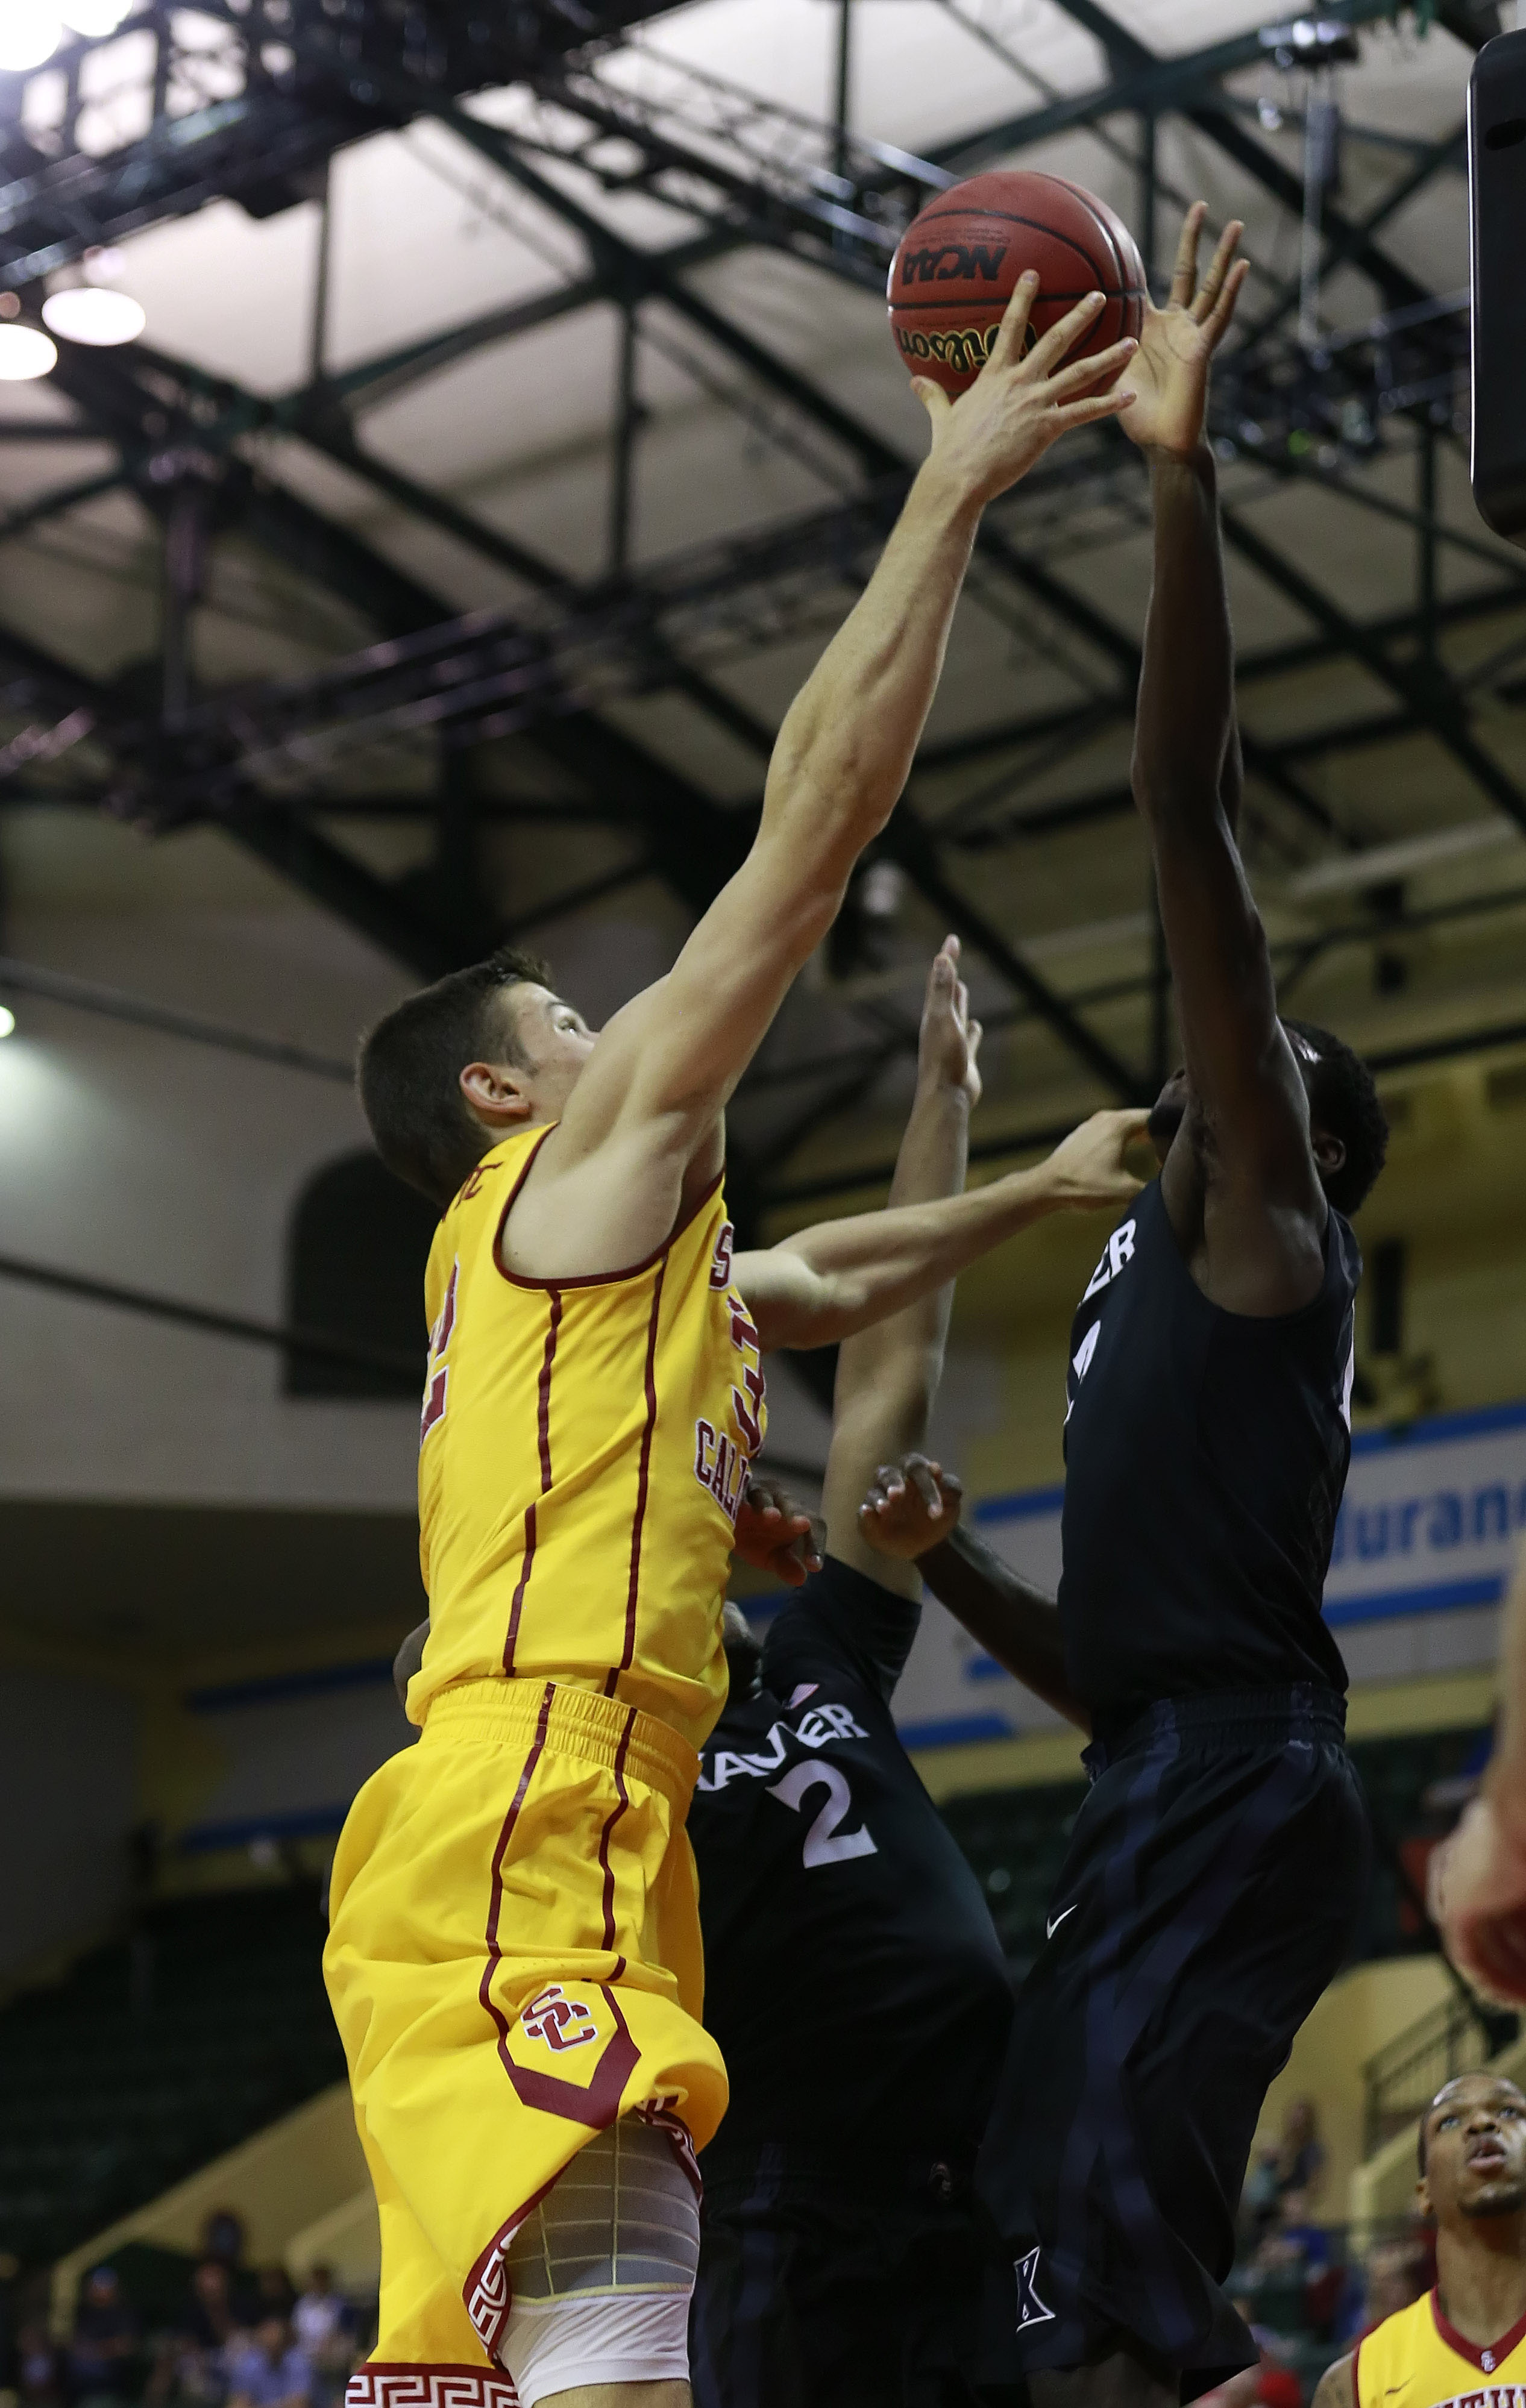 If Makinde is coming from the help side, you're better off holding onto the ball and taking the travel.